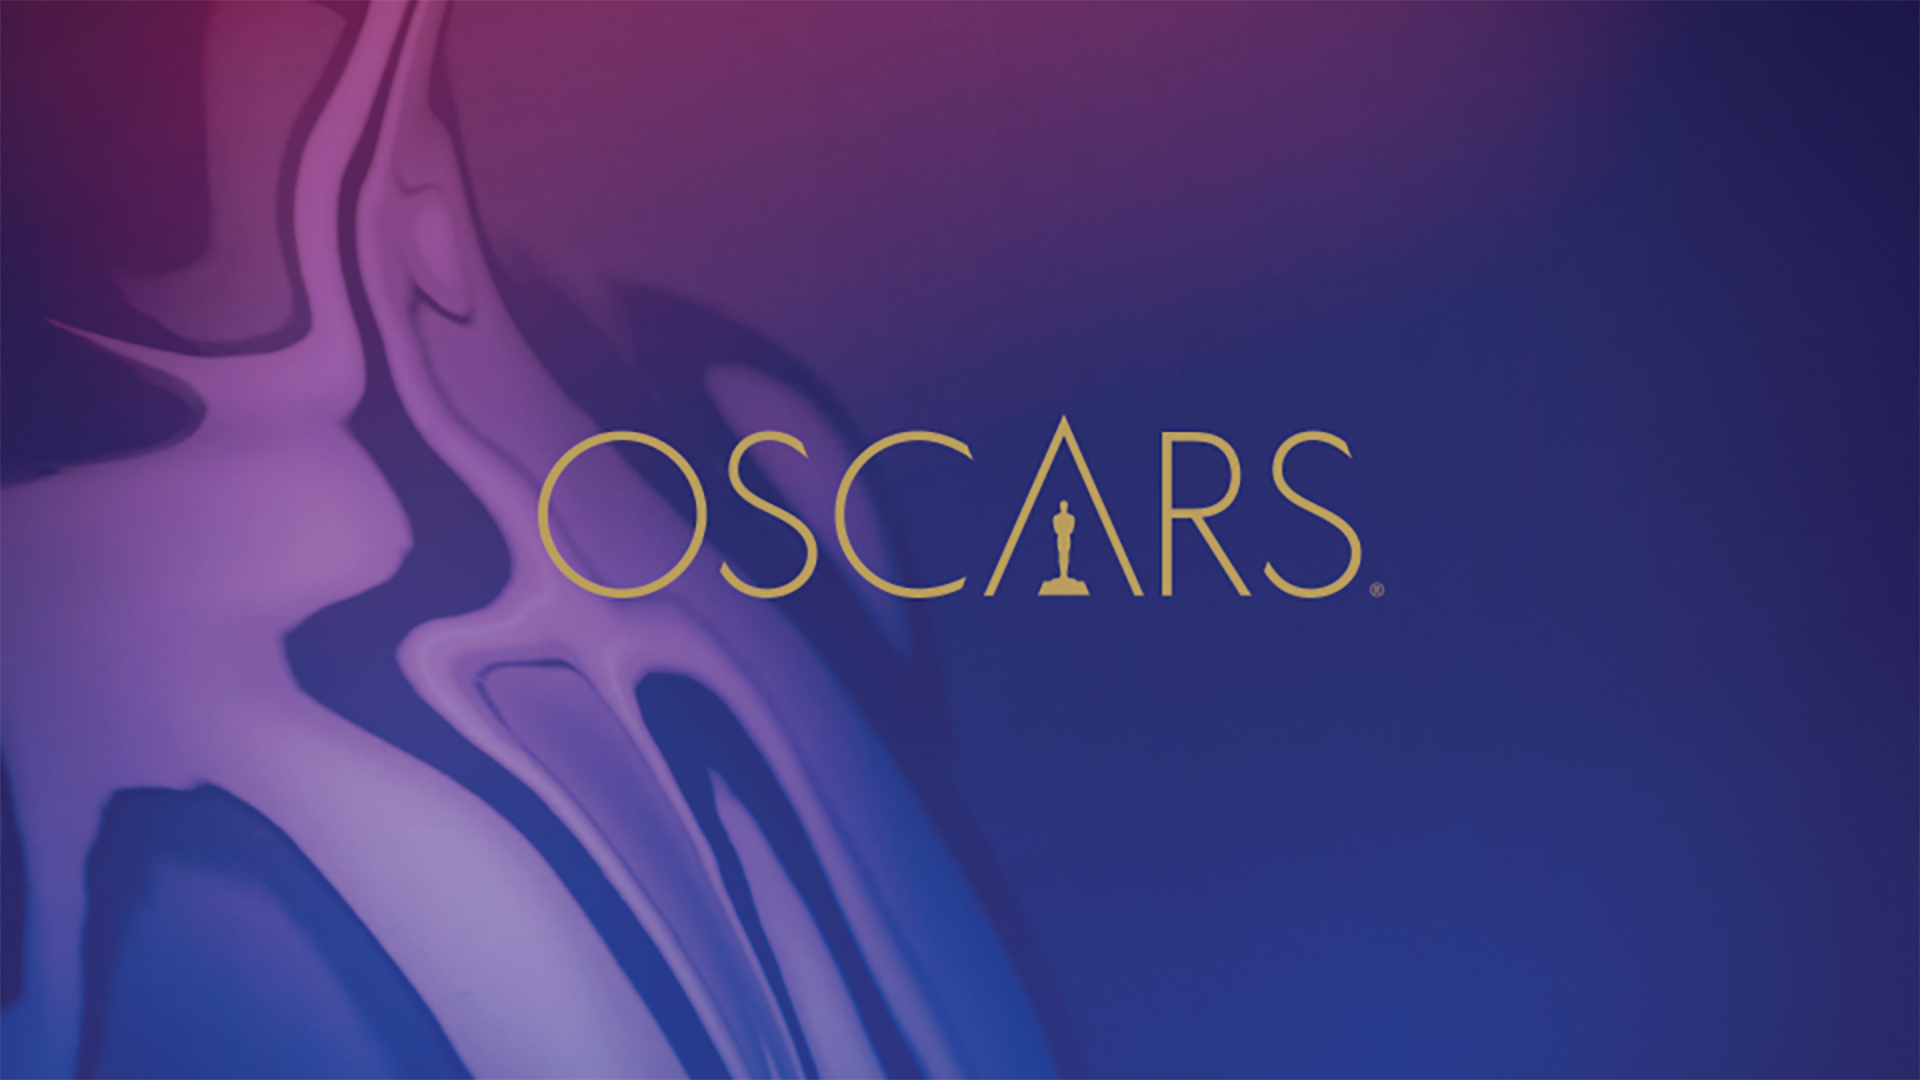 Oscars 2019: My picks in all 24 categories